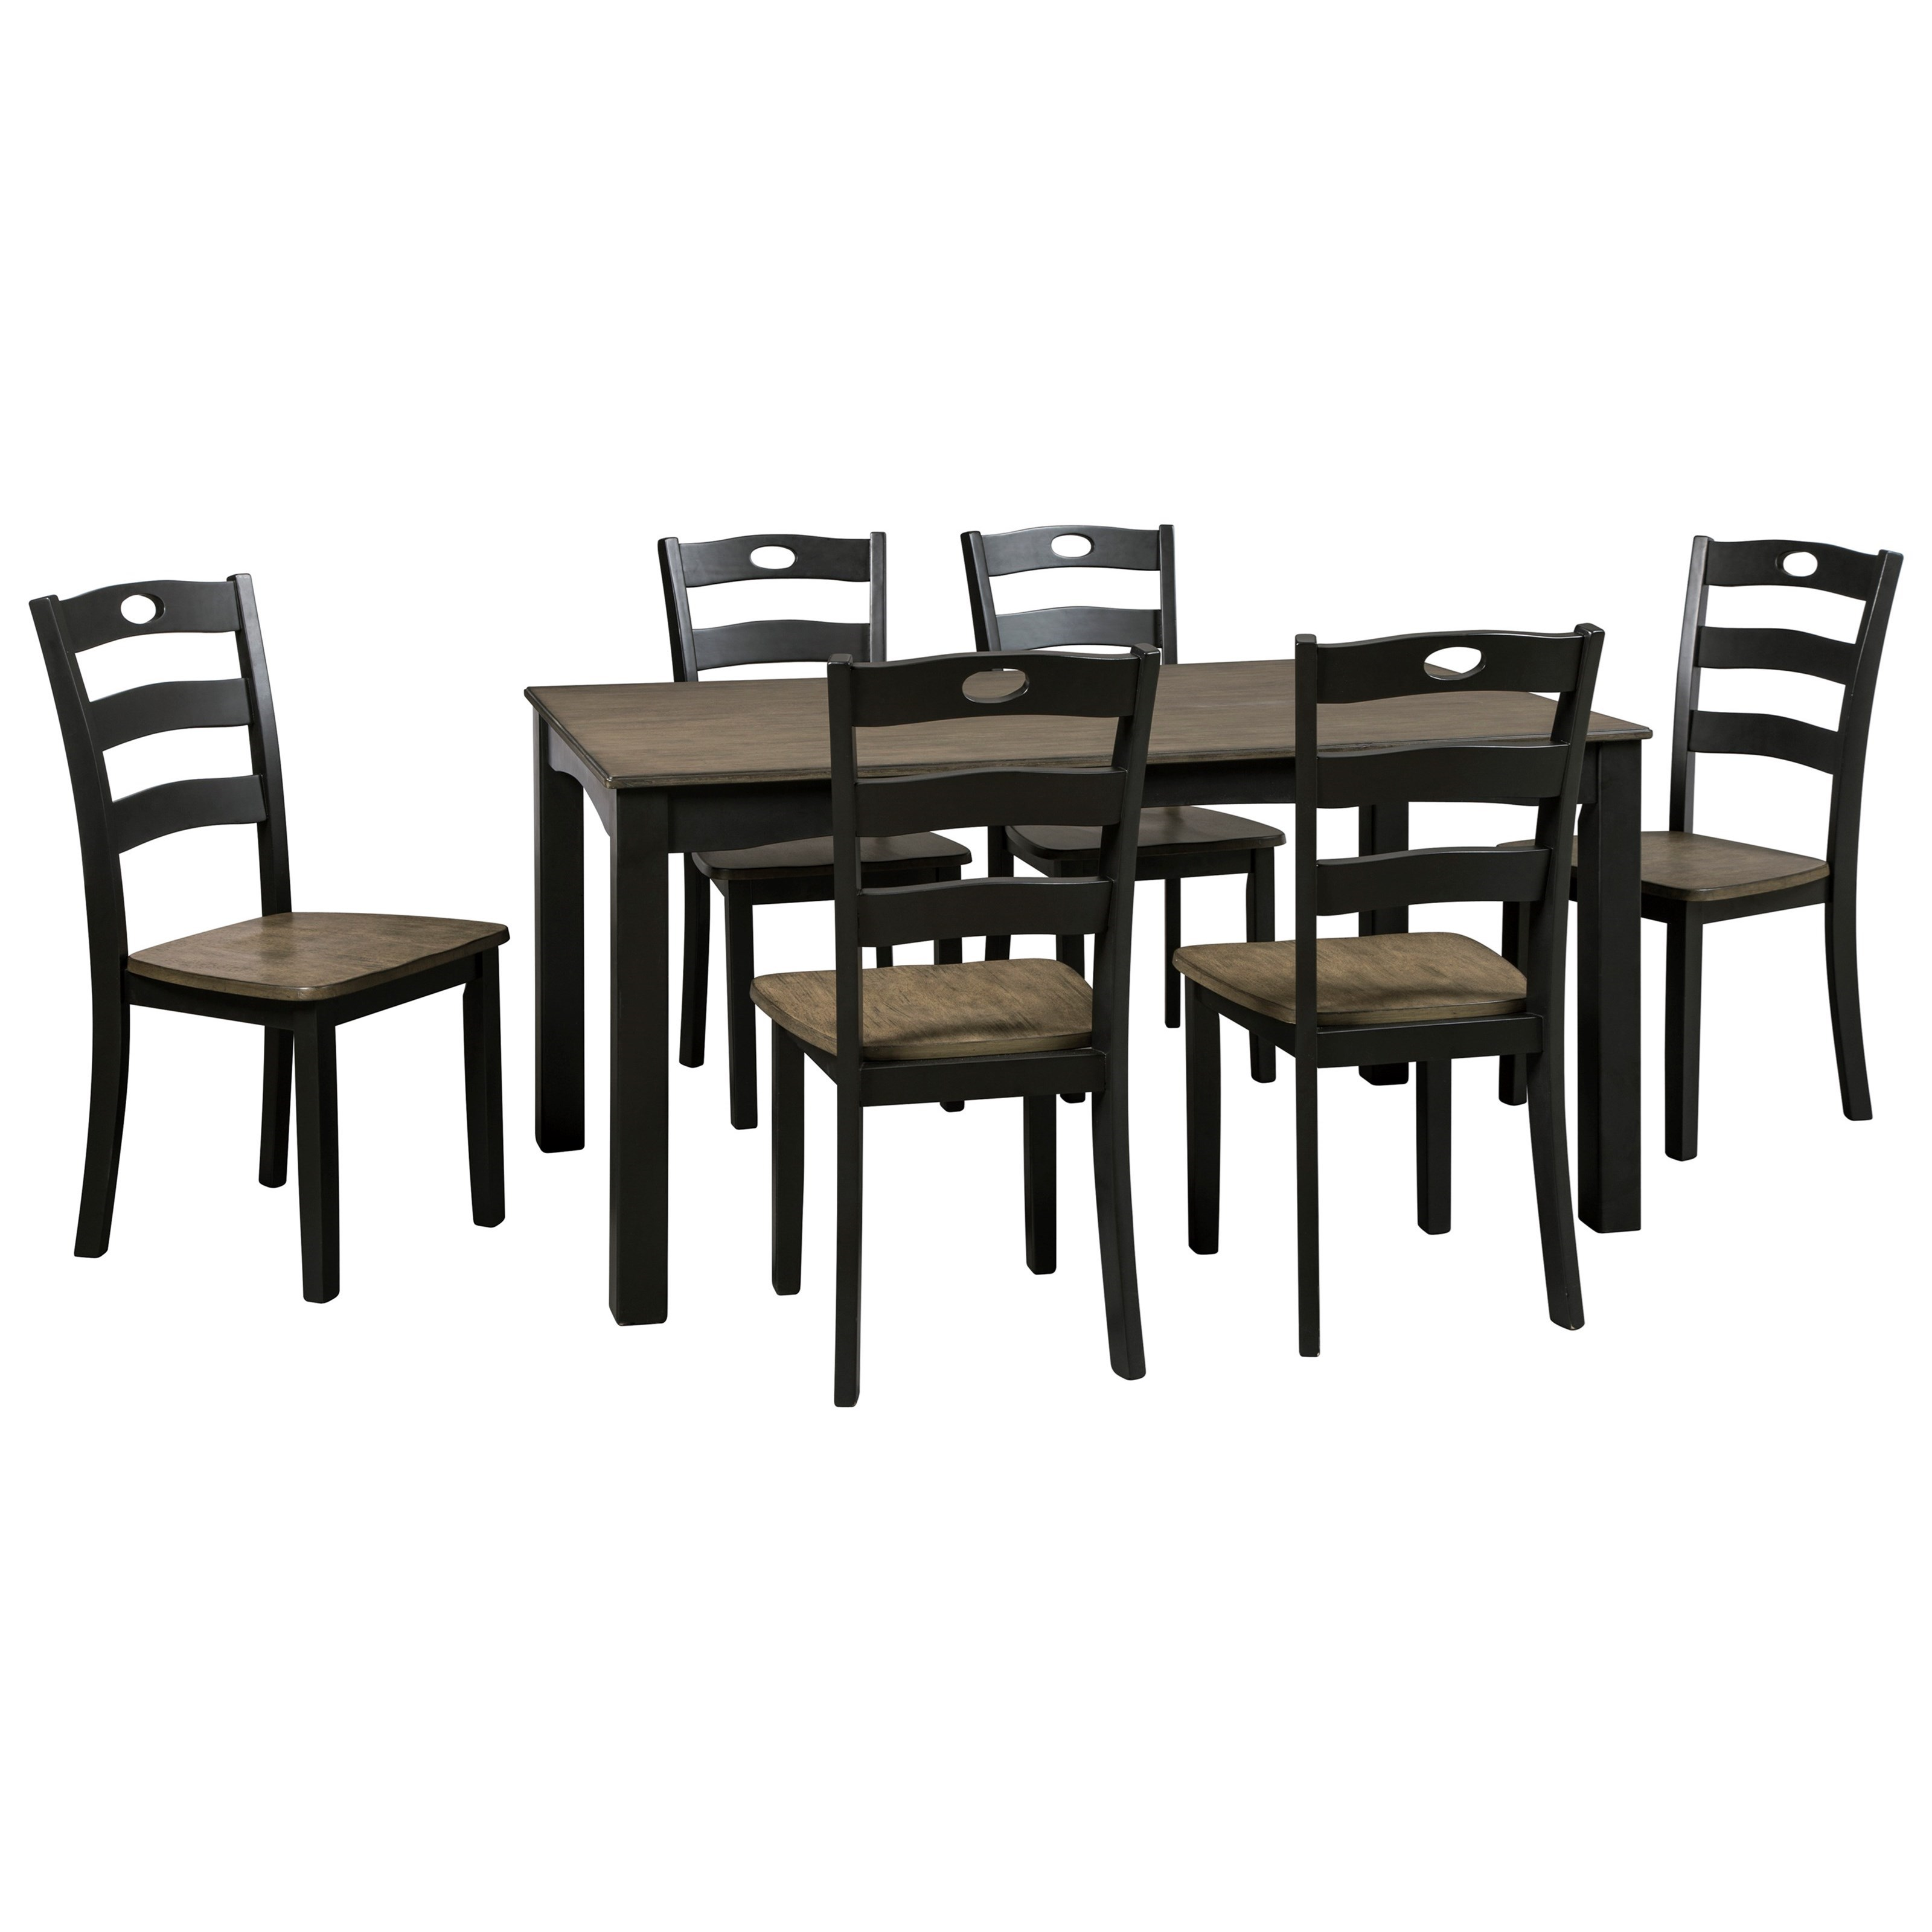 Black Dining Room Table And Chairs Froshburg Two Tone Finish 7 Piece Dining Room Table Set By Signature Design By Ashley At Northeast Factory Direct